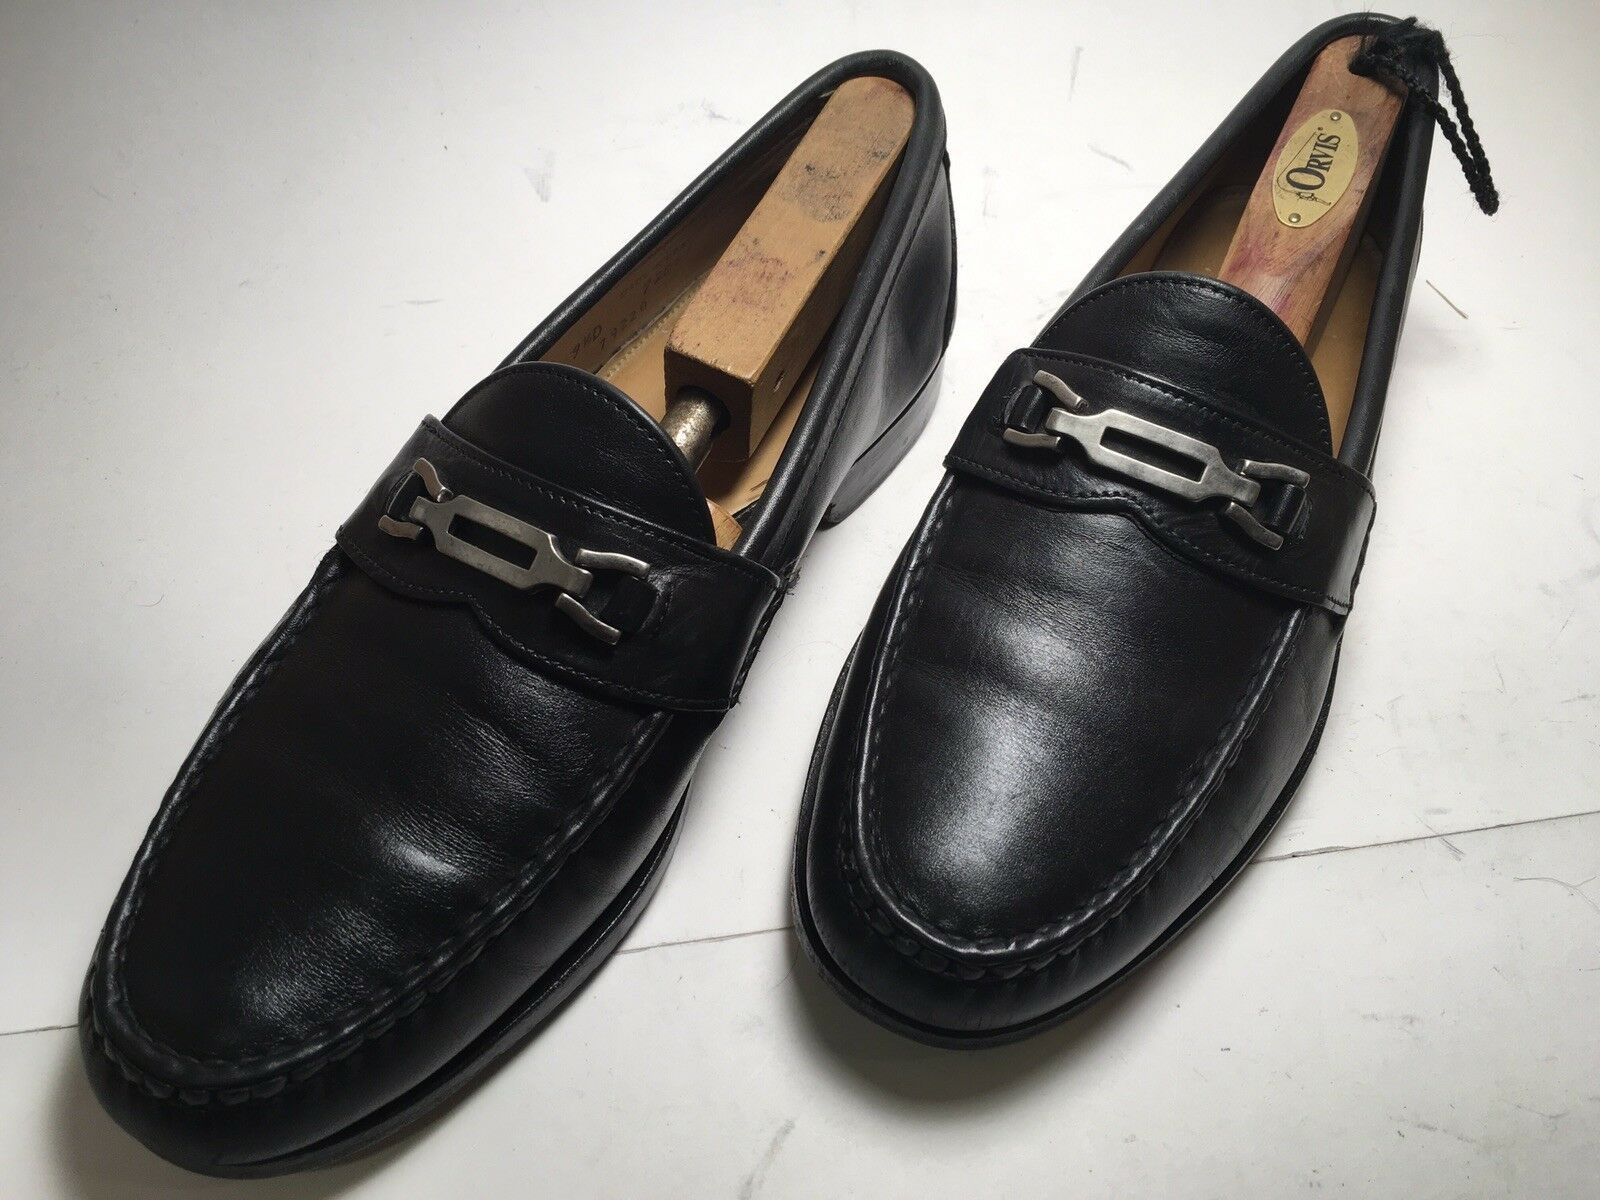 Footjoy Black Leather Horsebit Penny Loafer Sz. 9.5 D